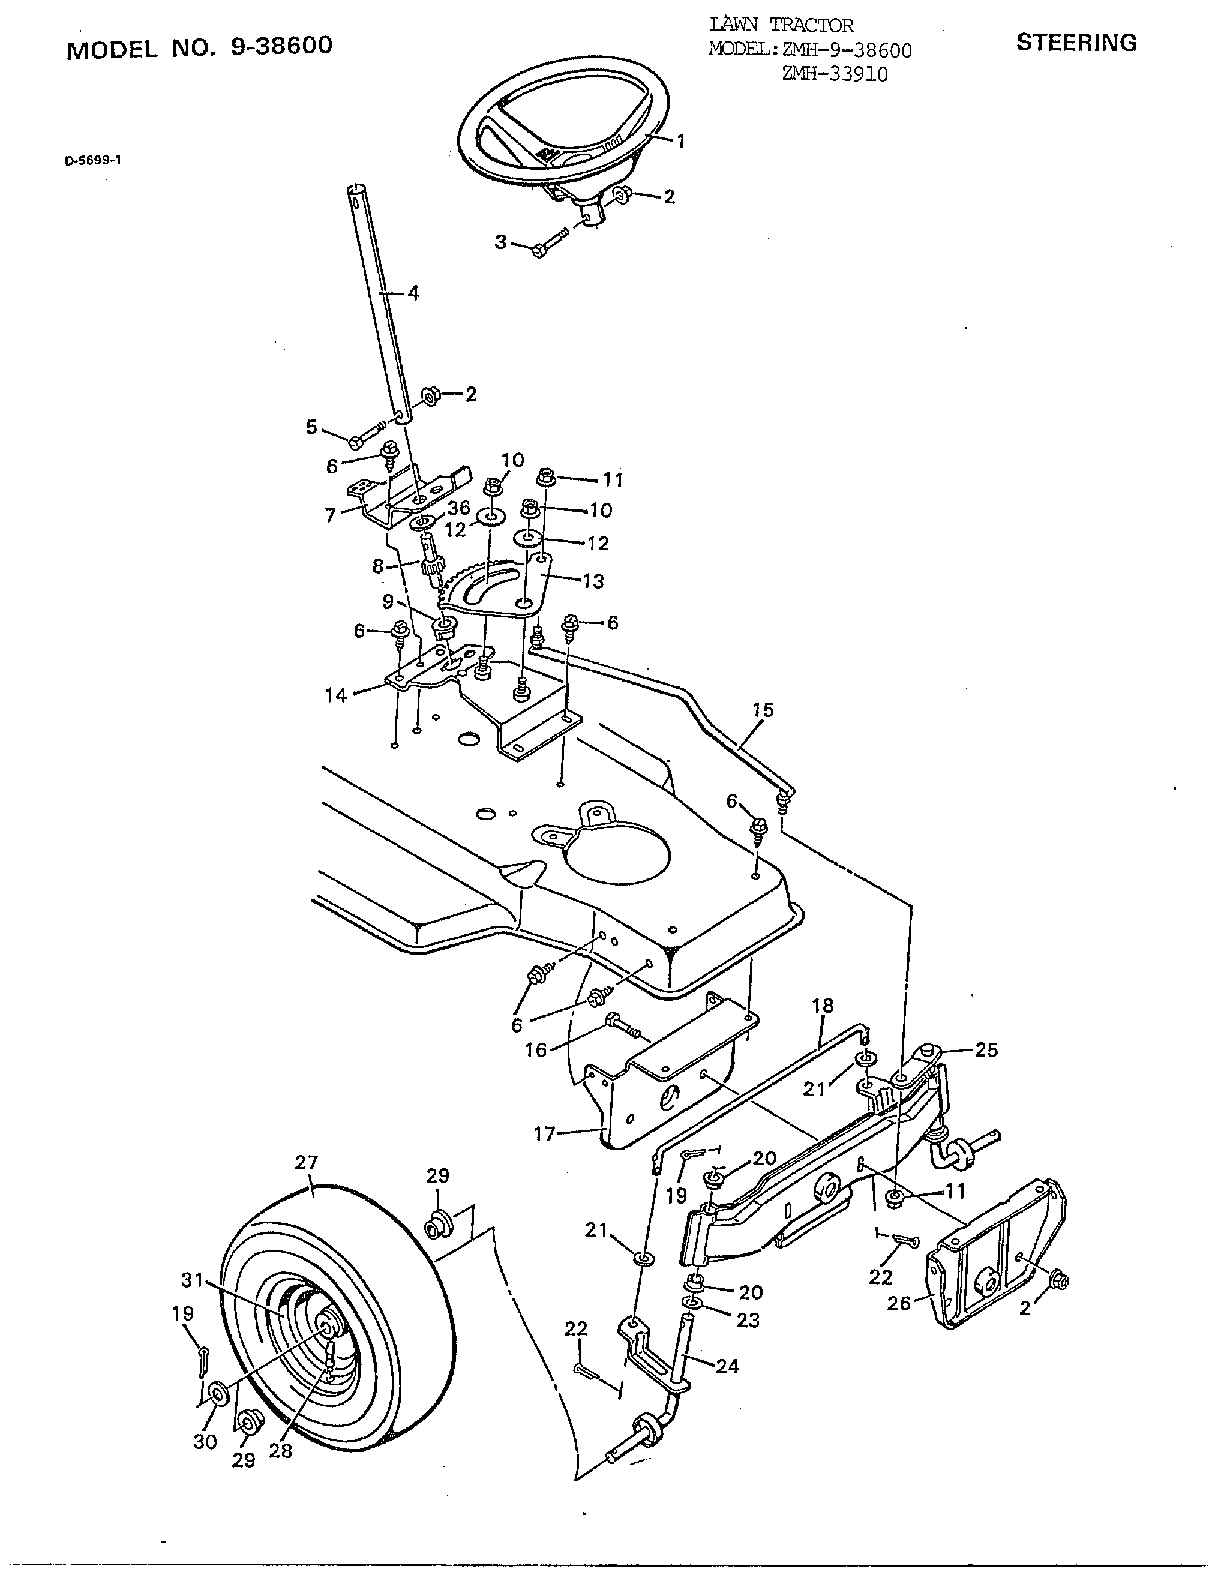 STEERING Diagram & Parts List for Model 33910 Murray-Parts